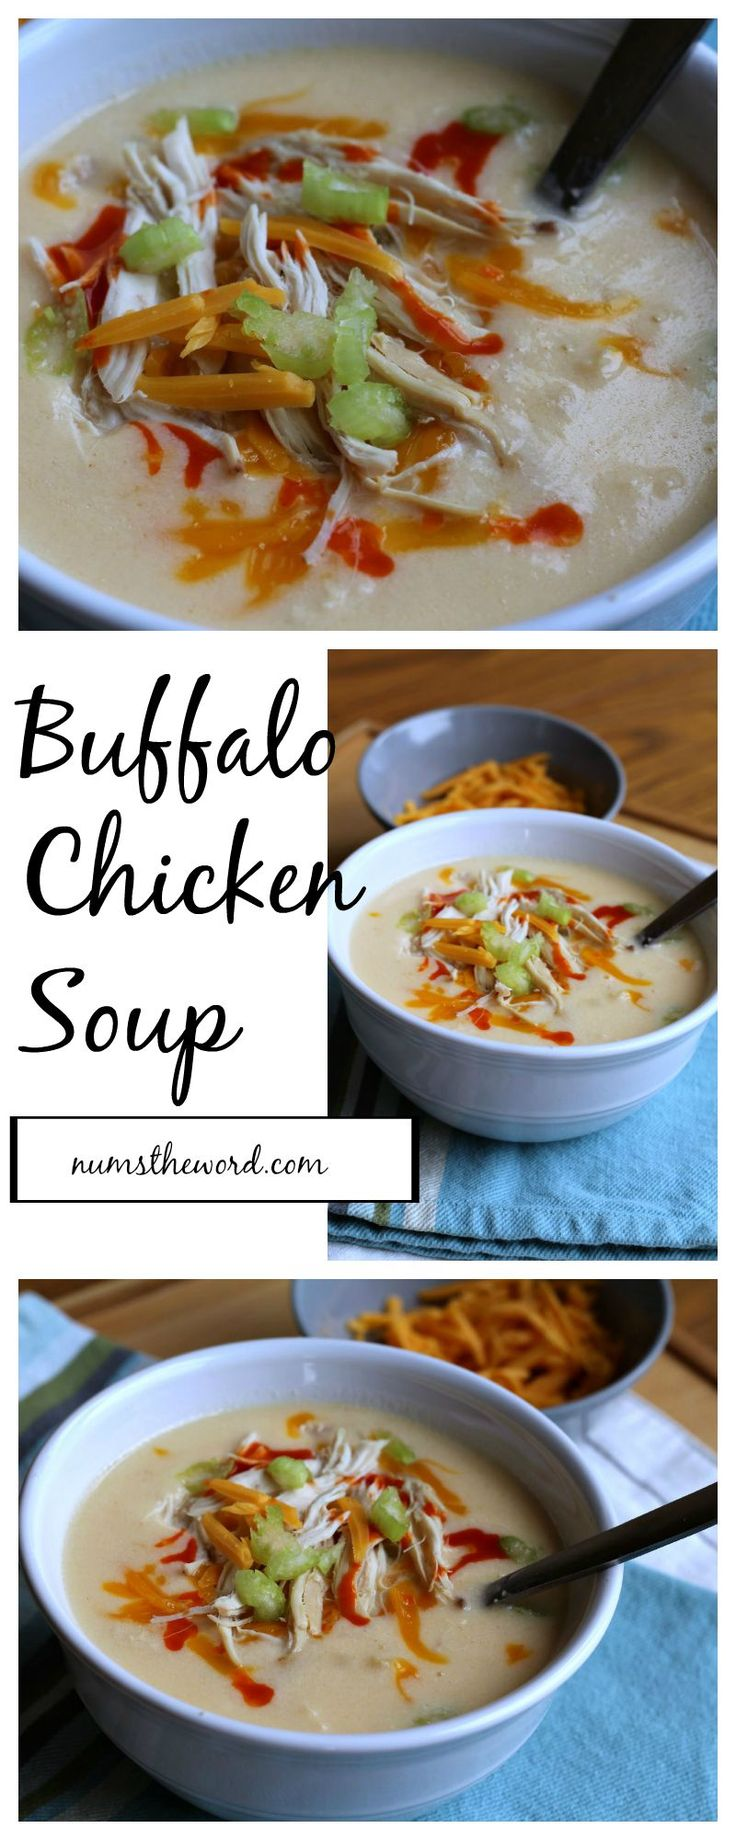 Buffalo Chicken Soup - creamy and just a bit spicy chicken soup that's ready in less than 30 minutes! Score!